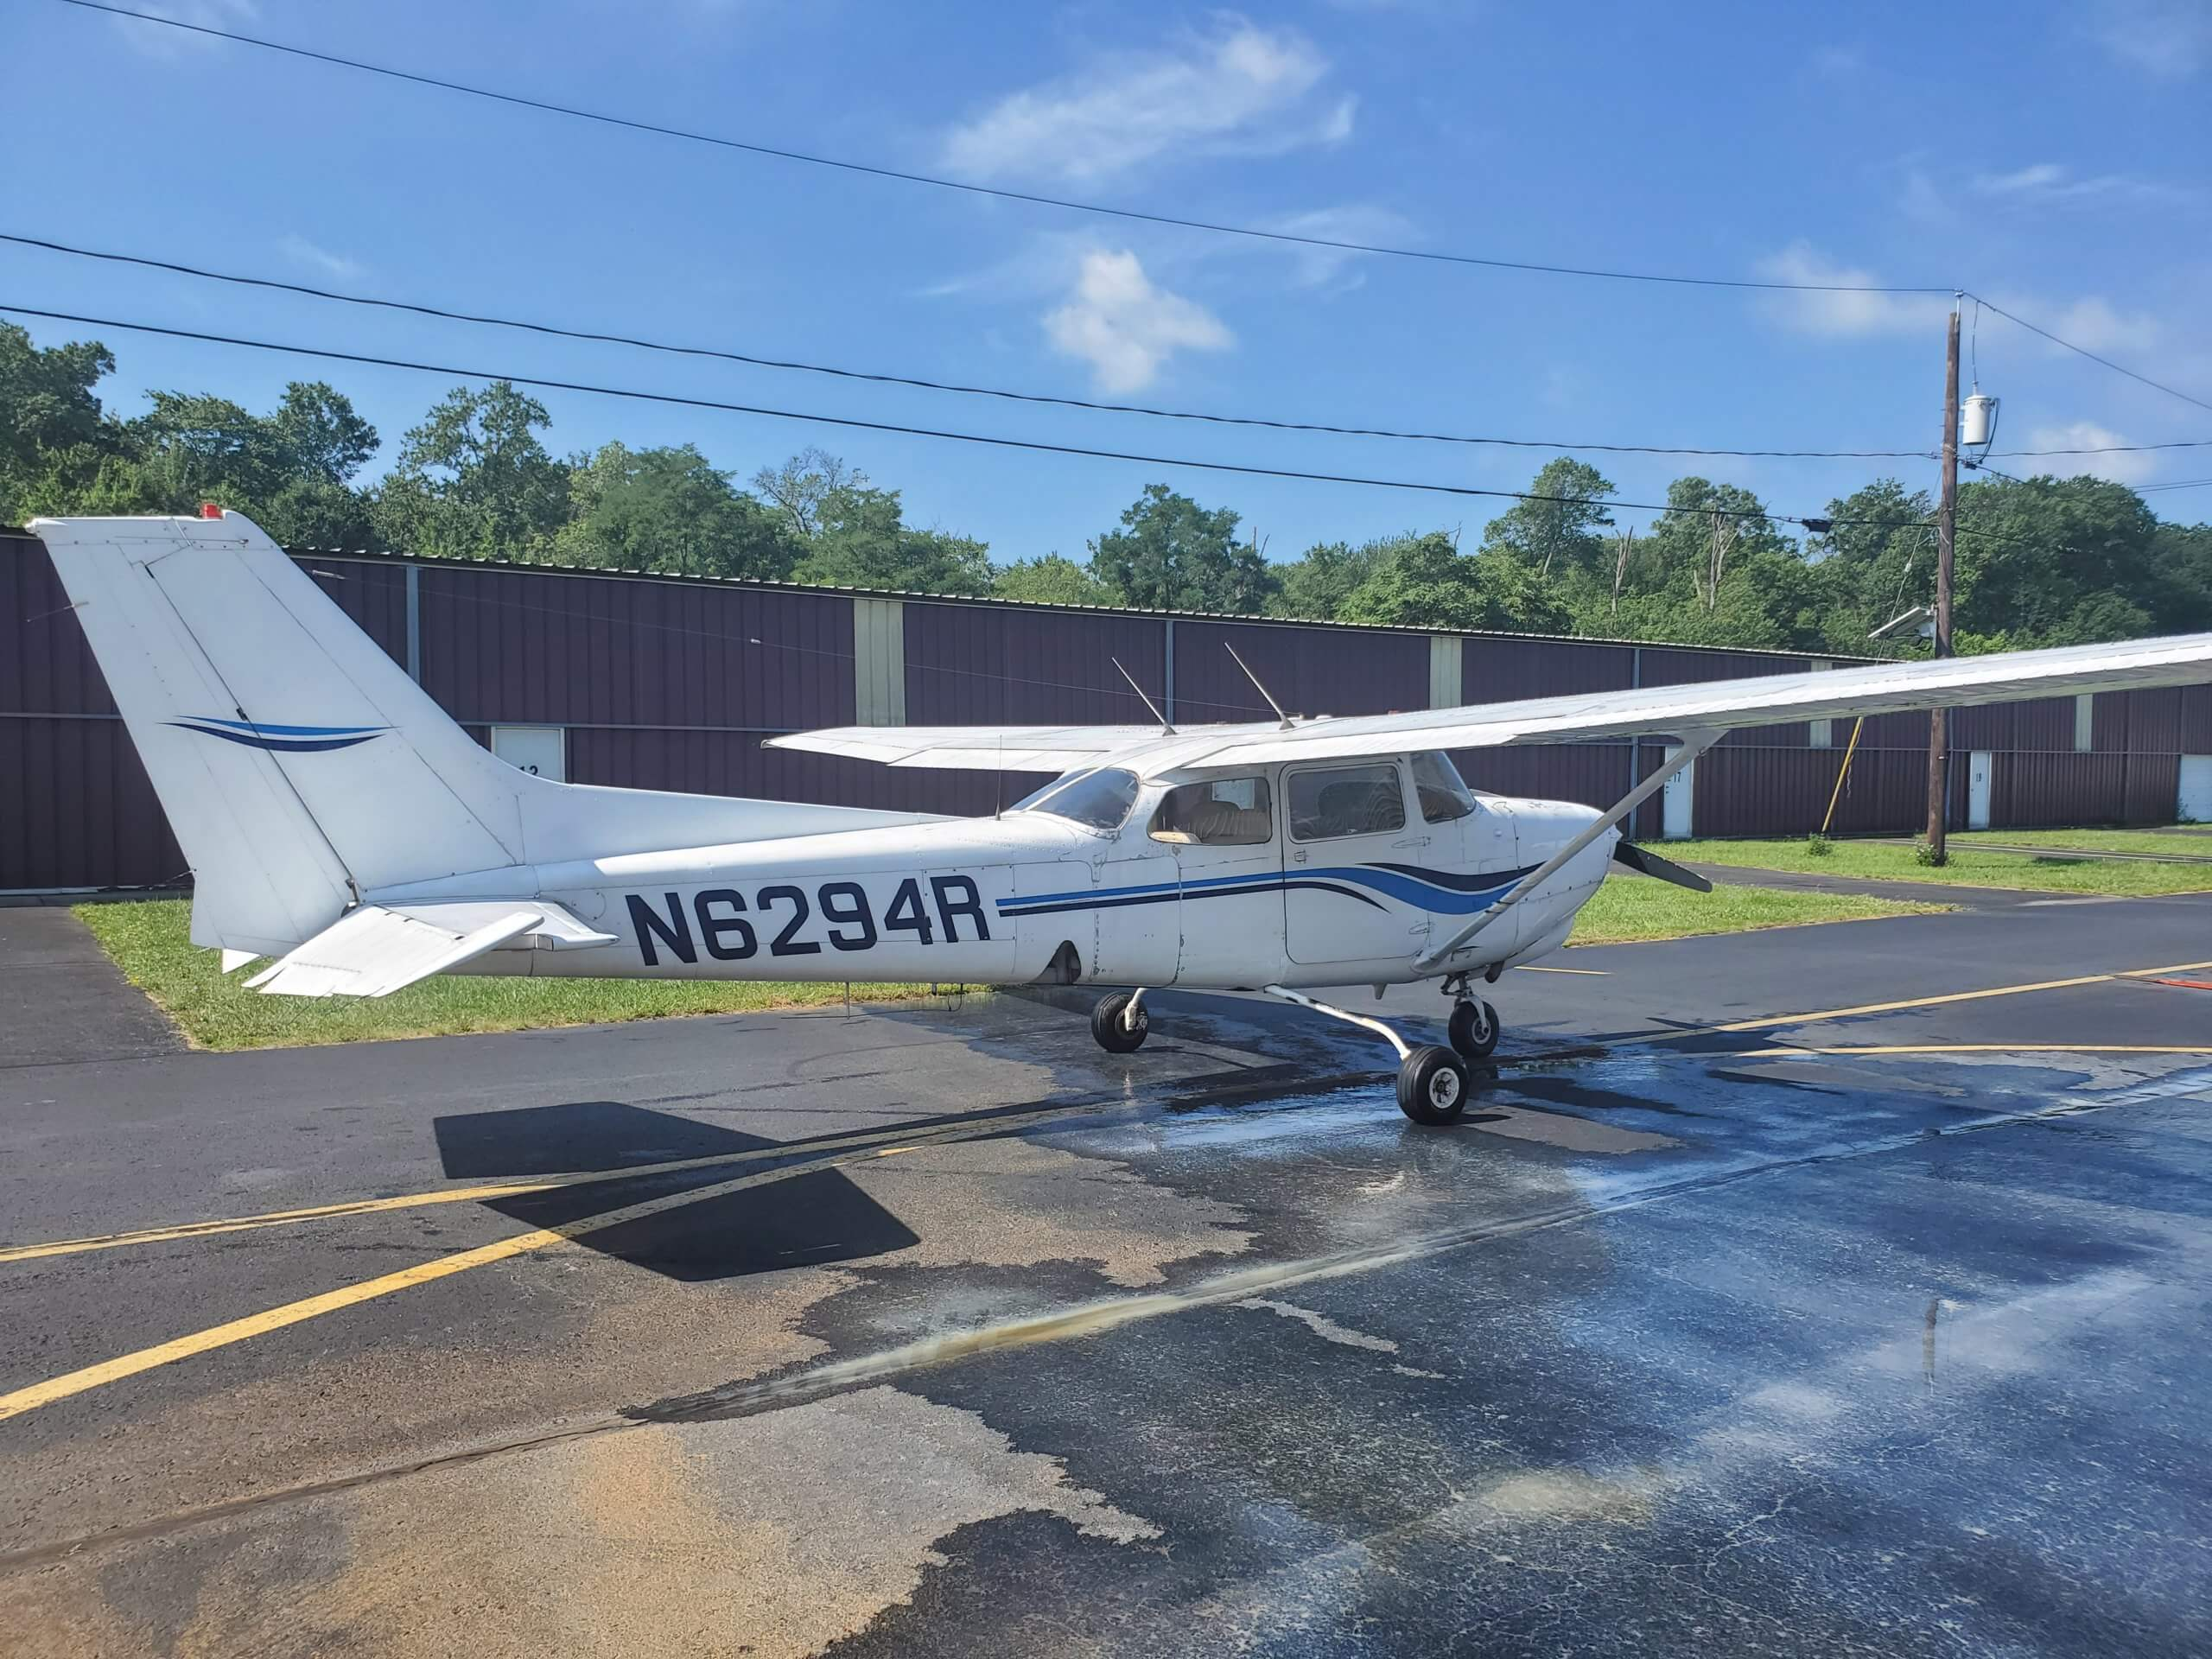 1980 Cessna 172RG - FOR SALE at Princeton Airport - Contact Ken Nierenberg at 609-731-4628 for details